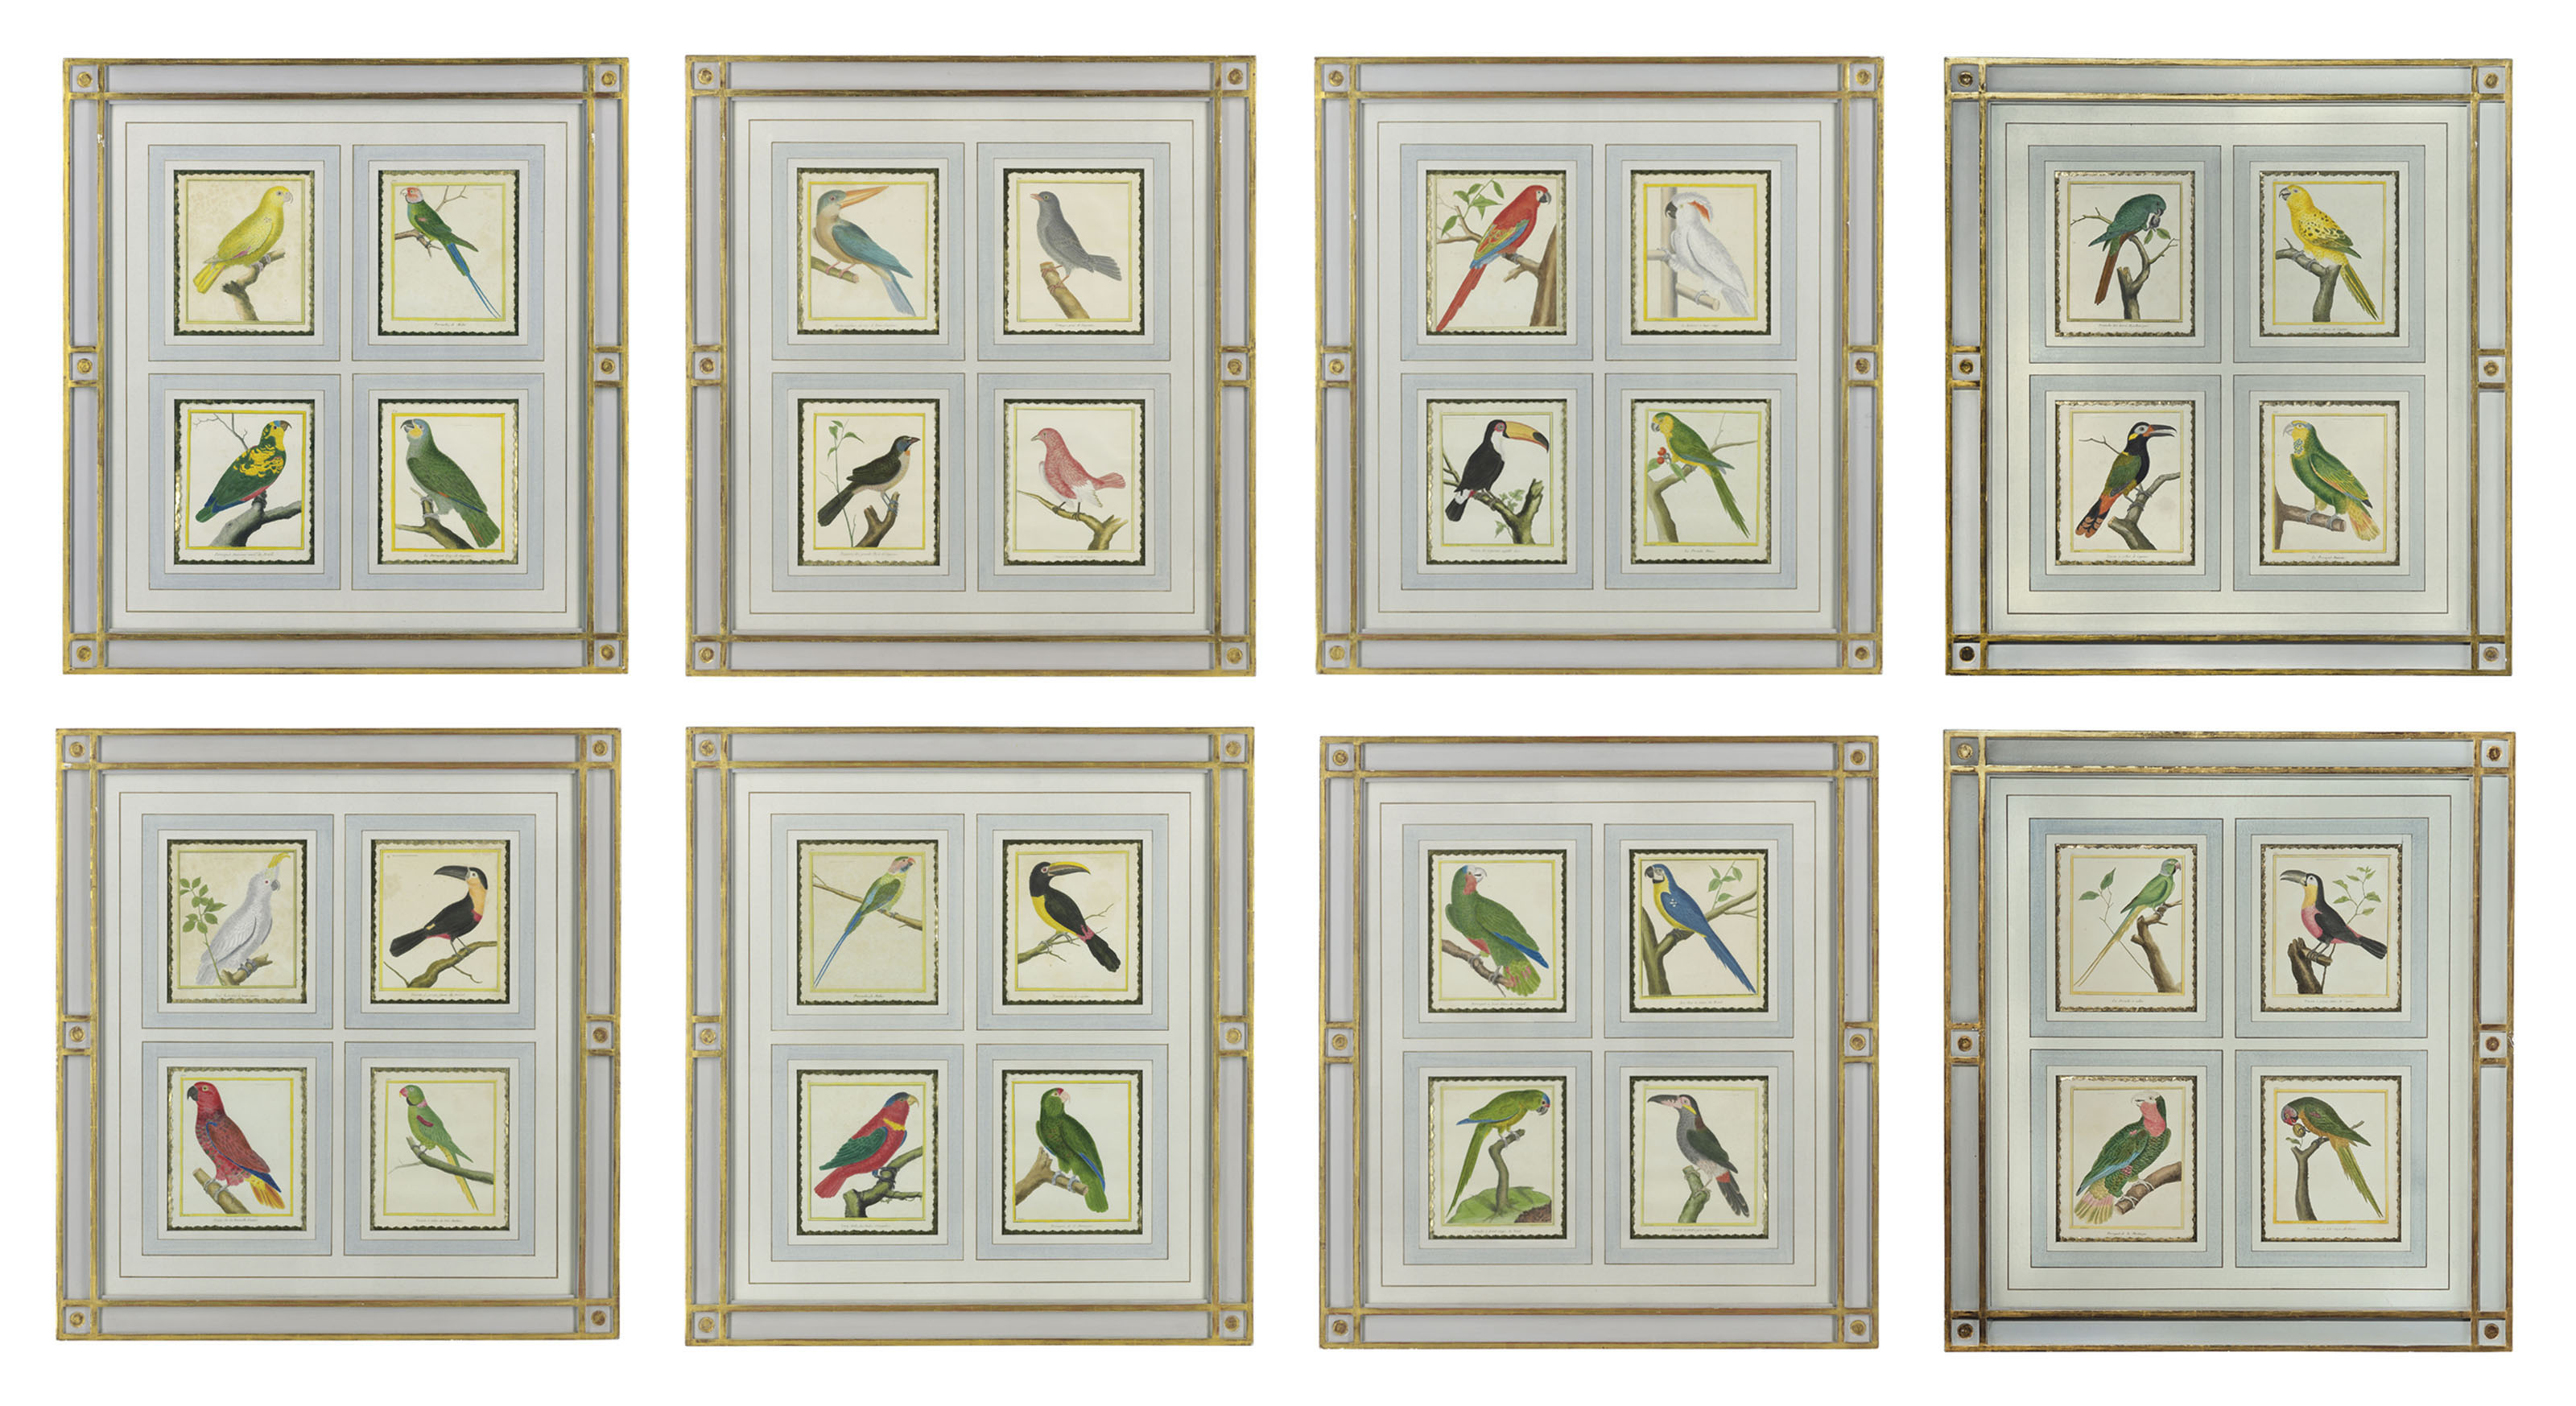 THIRTY-TWO HAND-COLOURED ENGRAVINGS OF BIRDS FROM HISTOIRE NATURELLE DES OISEAUX